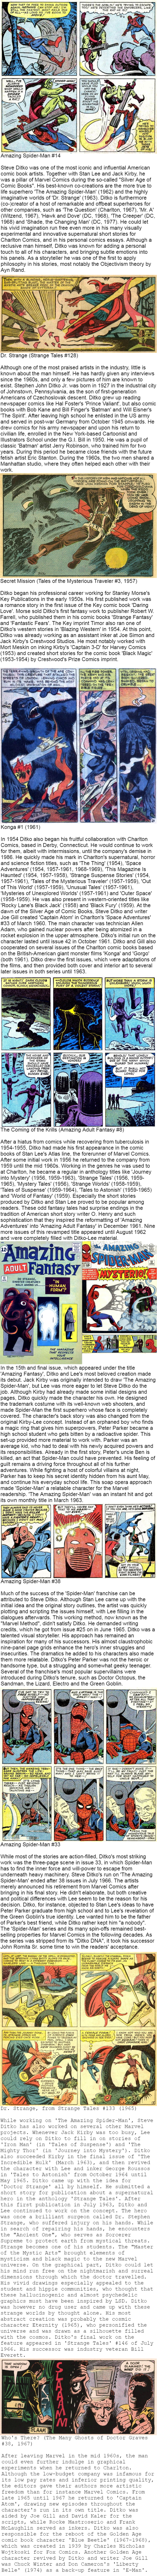 Steve Ditko was one of the most iconic and influential American comic book artists!